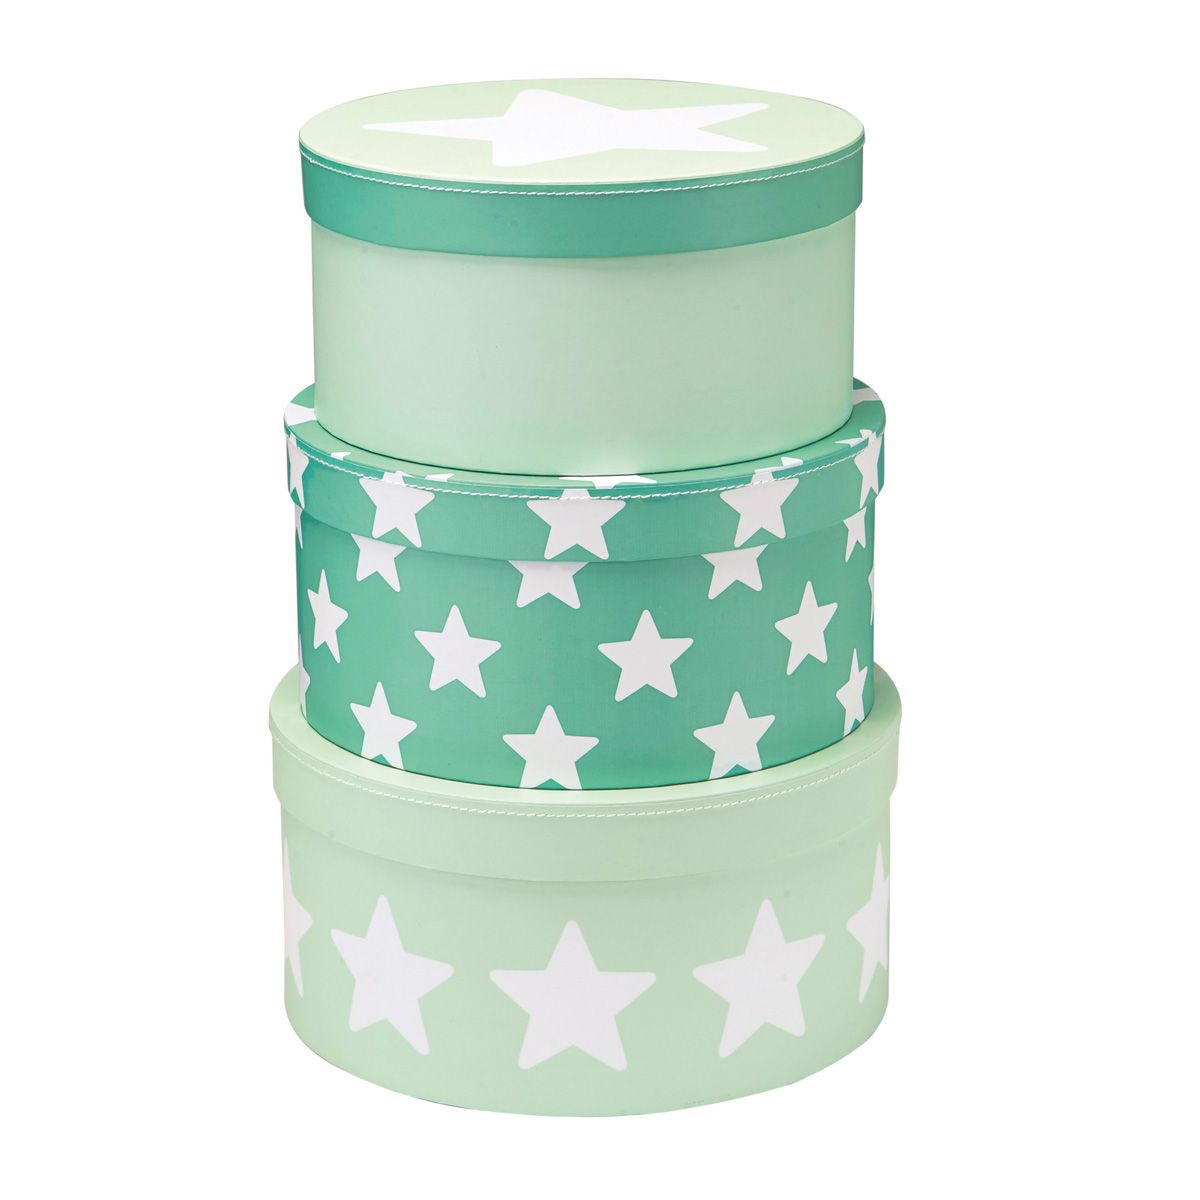 Pappboxen rund 'Star' mint 3er-Set